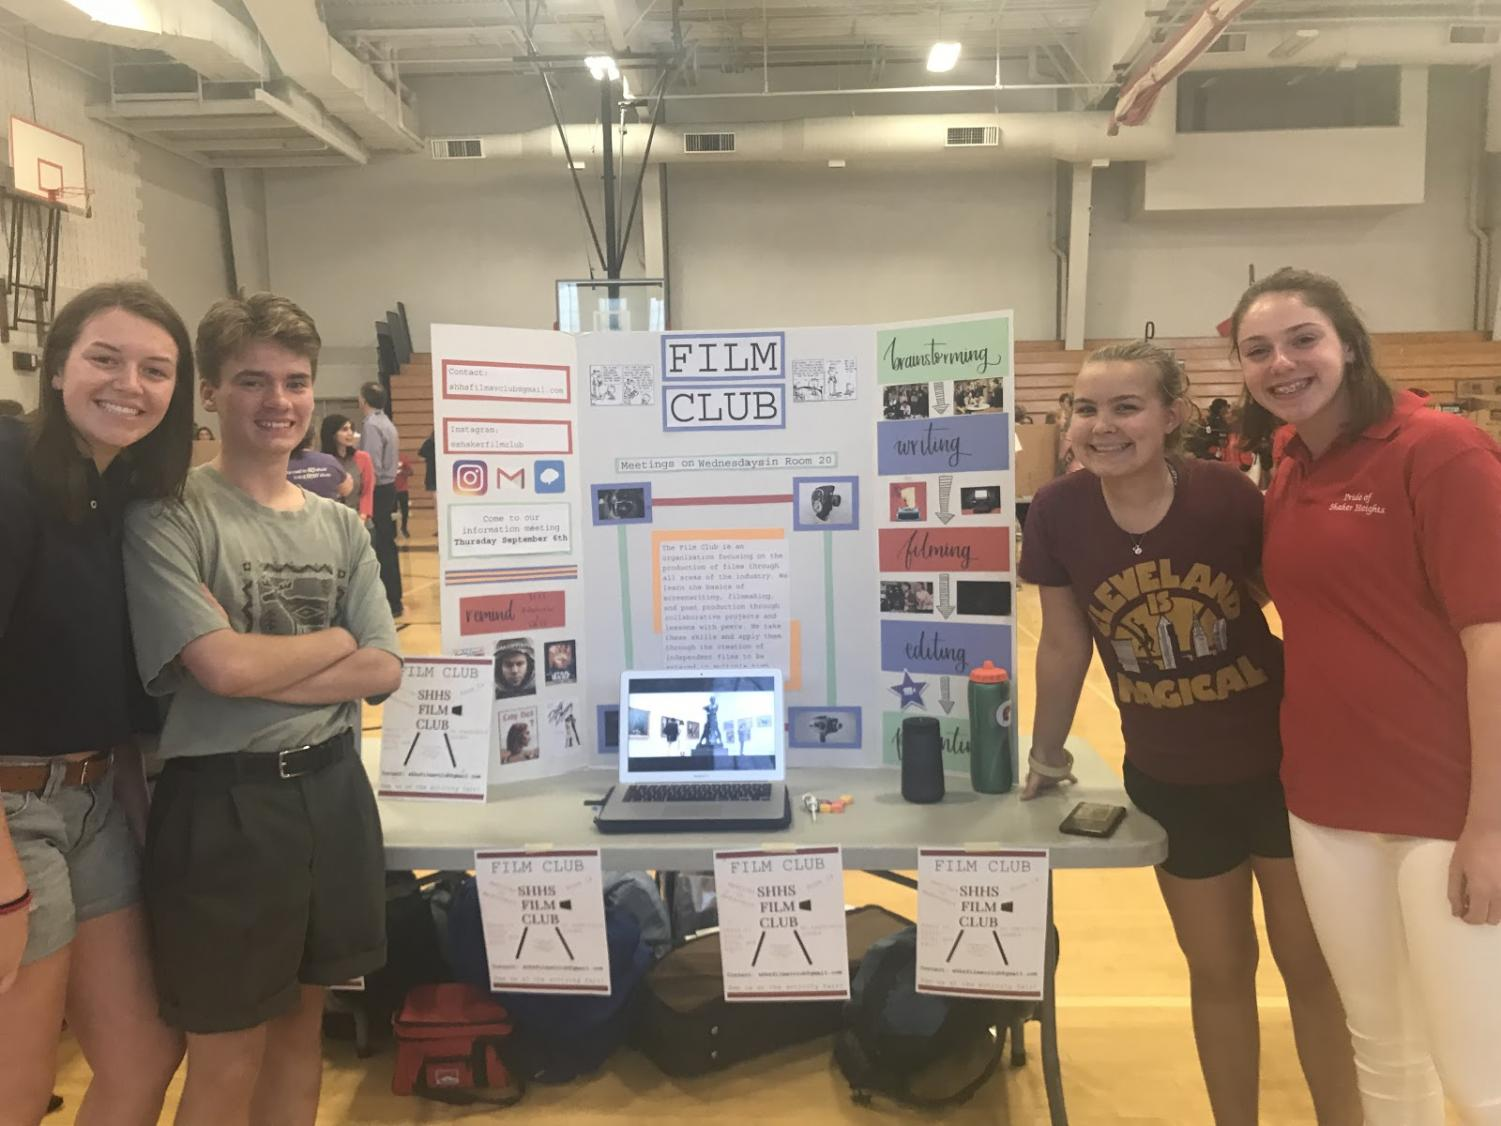 Executive Film Club team members Emie Coffman, Clovis Westlund, Rebecca Rhodes and Zoe Rosenfelt stand by their table at the activity fair.